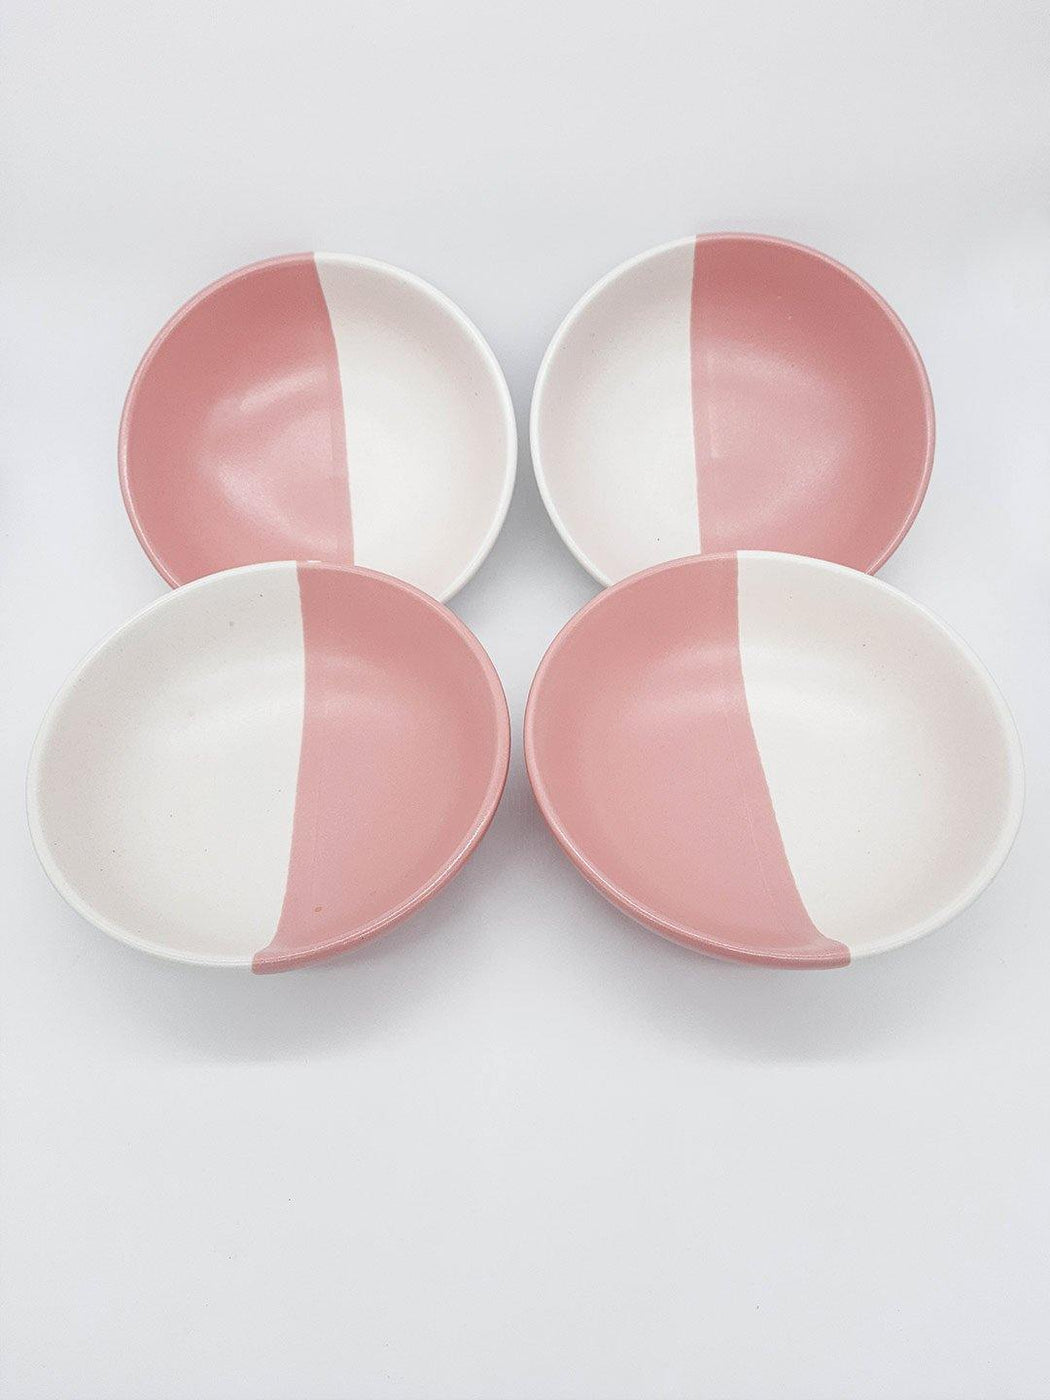 Kypelo Serve Pink - Set Of 4 - Thevasa